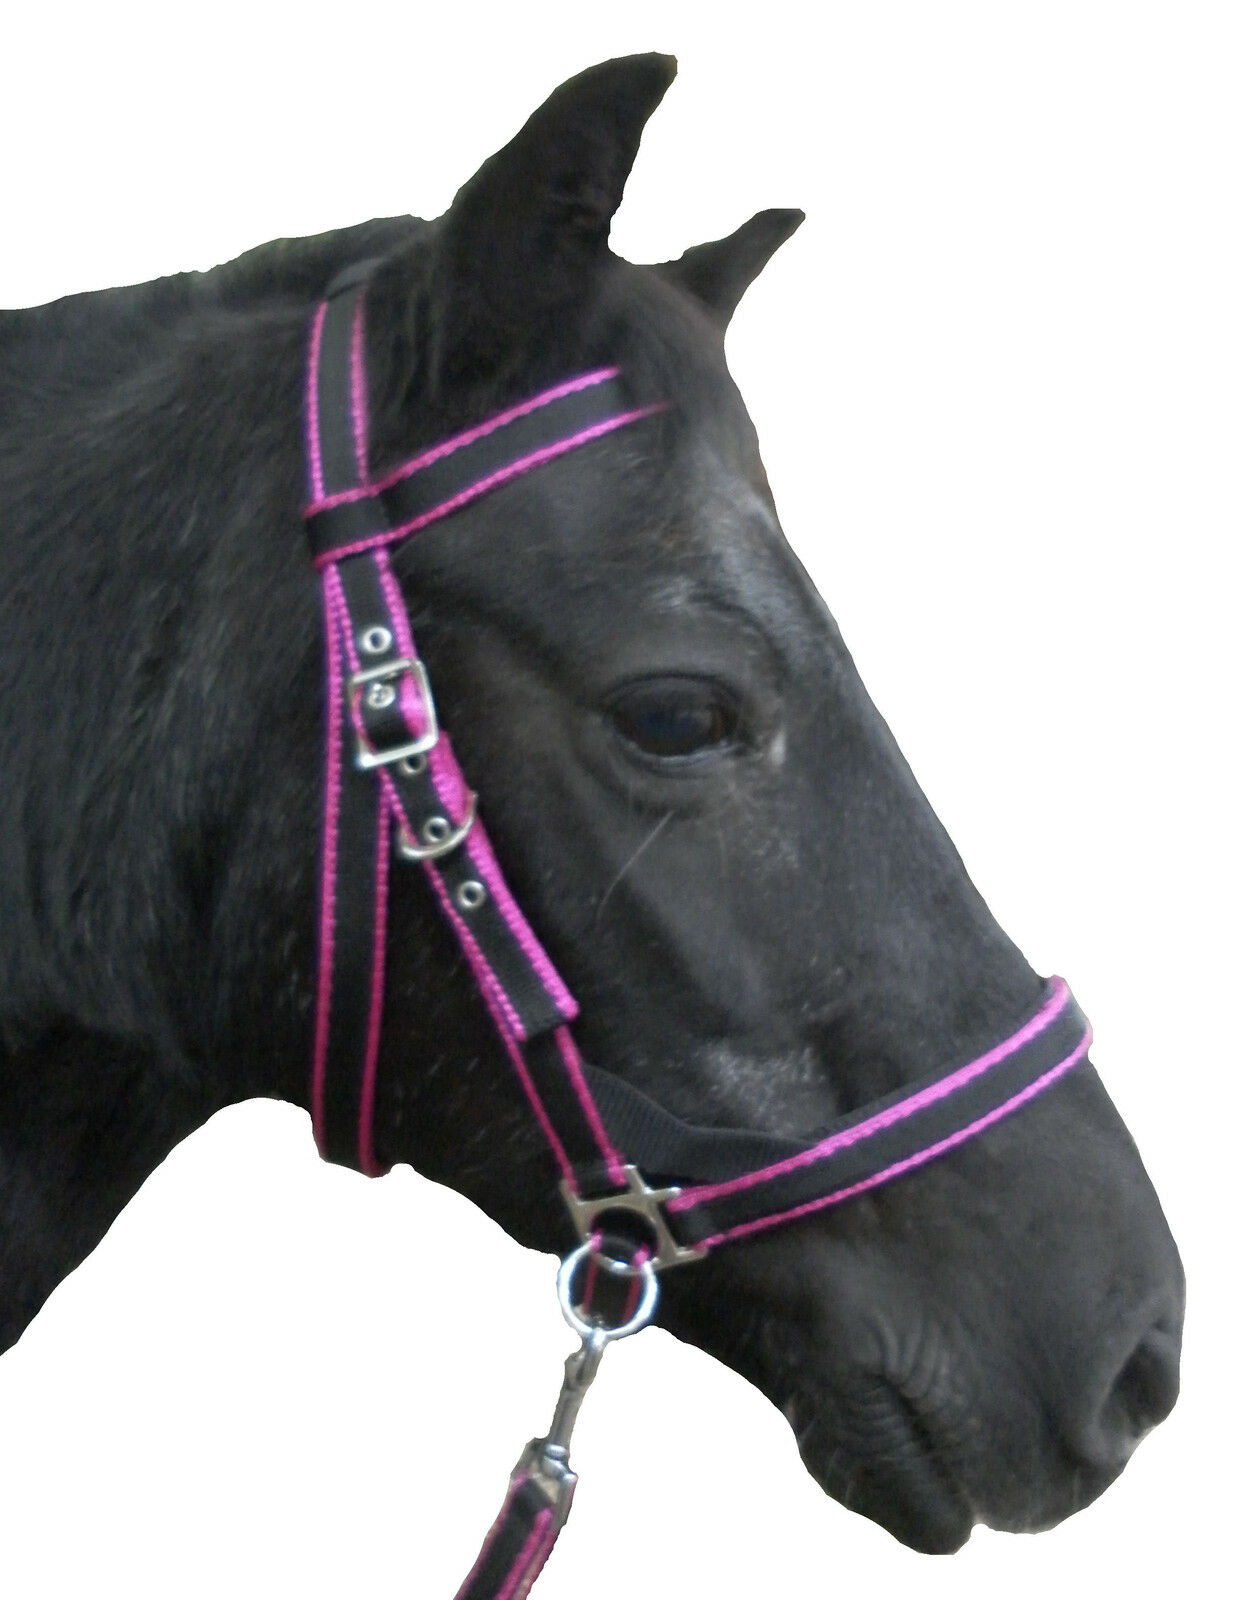 Official Libby's SCAWBRIG Bitless Bridle, Mini Small Pony, Pony Cob Full, X Full